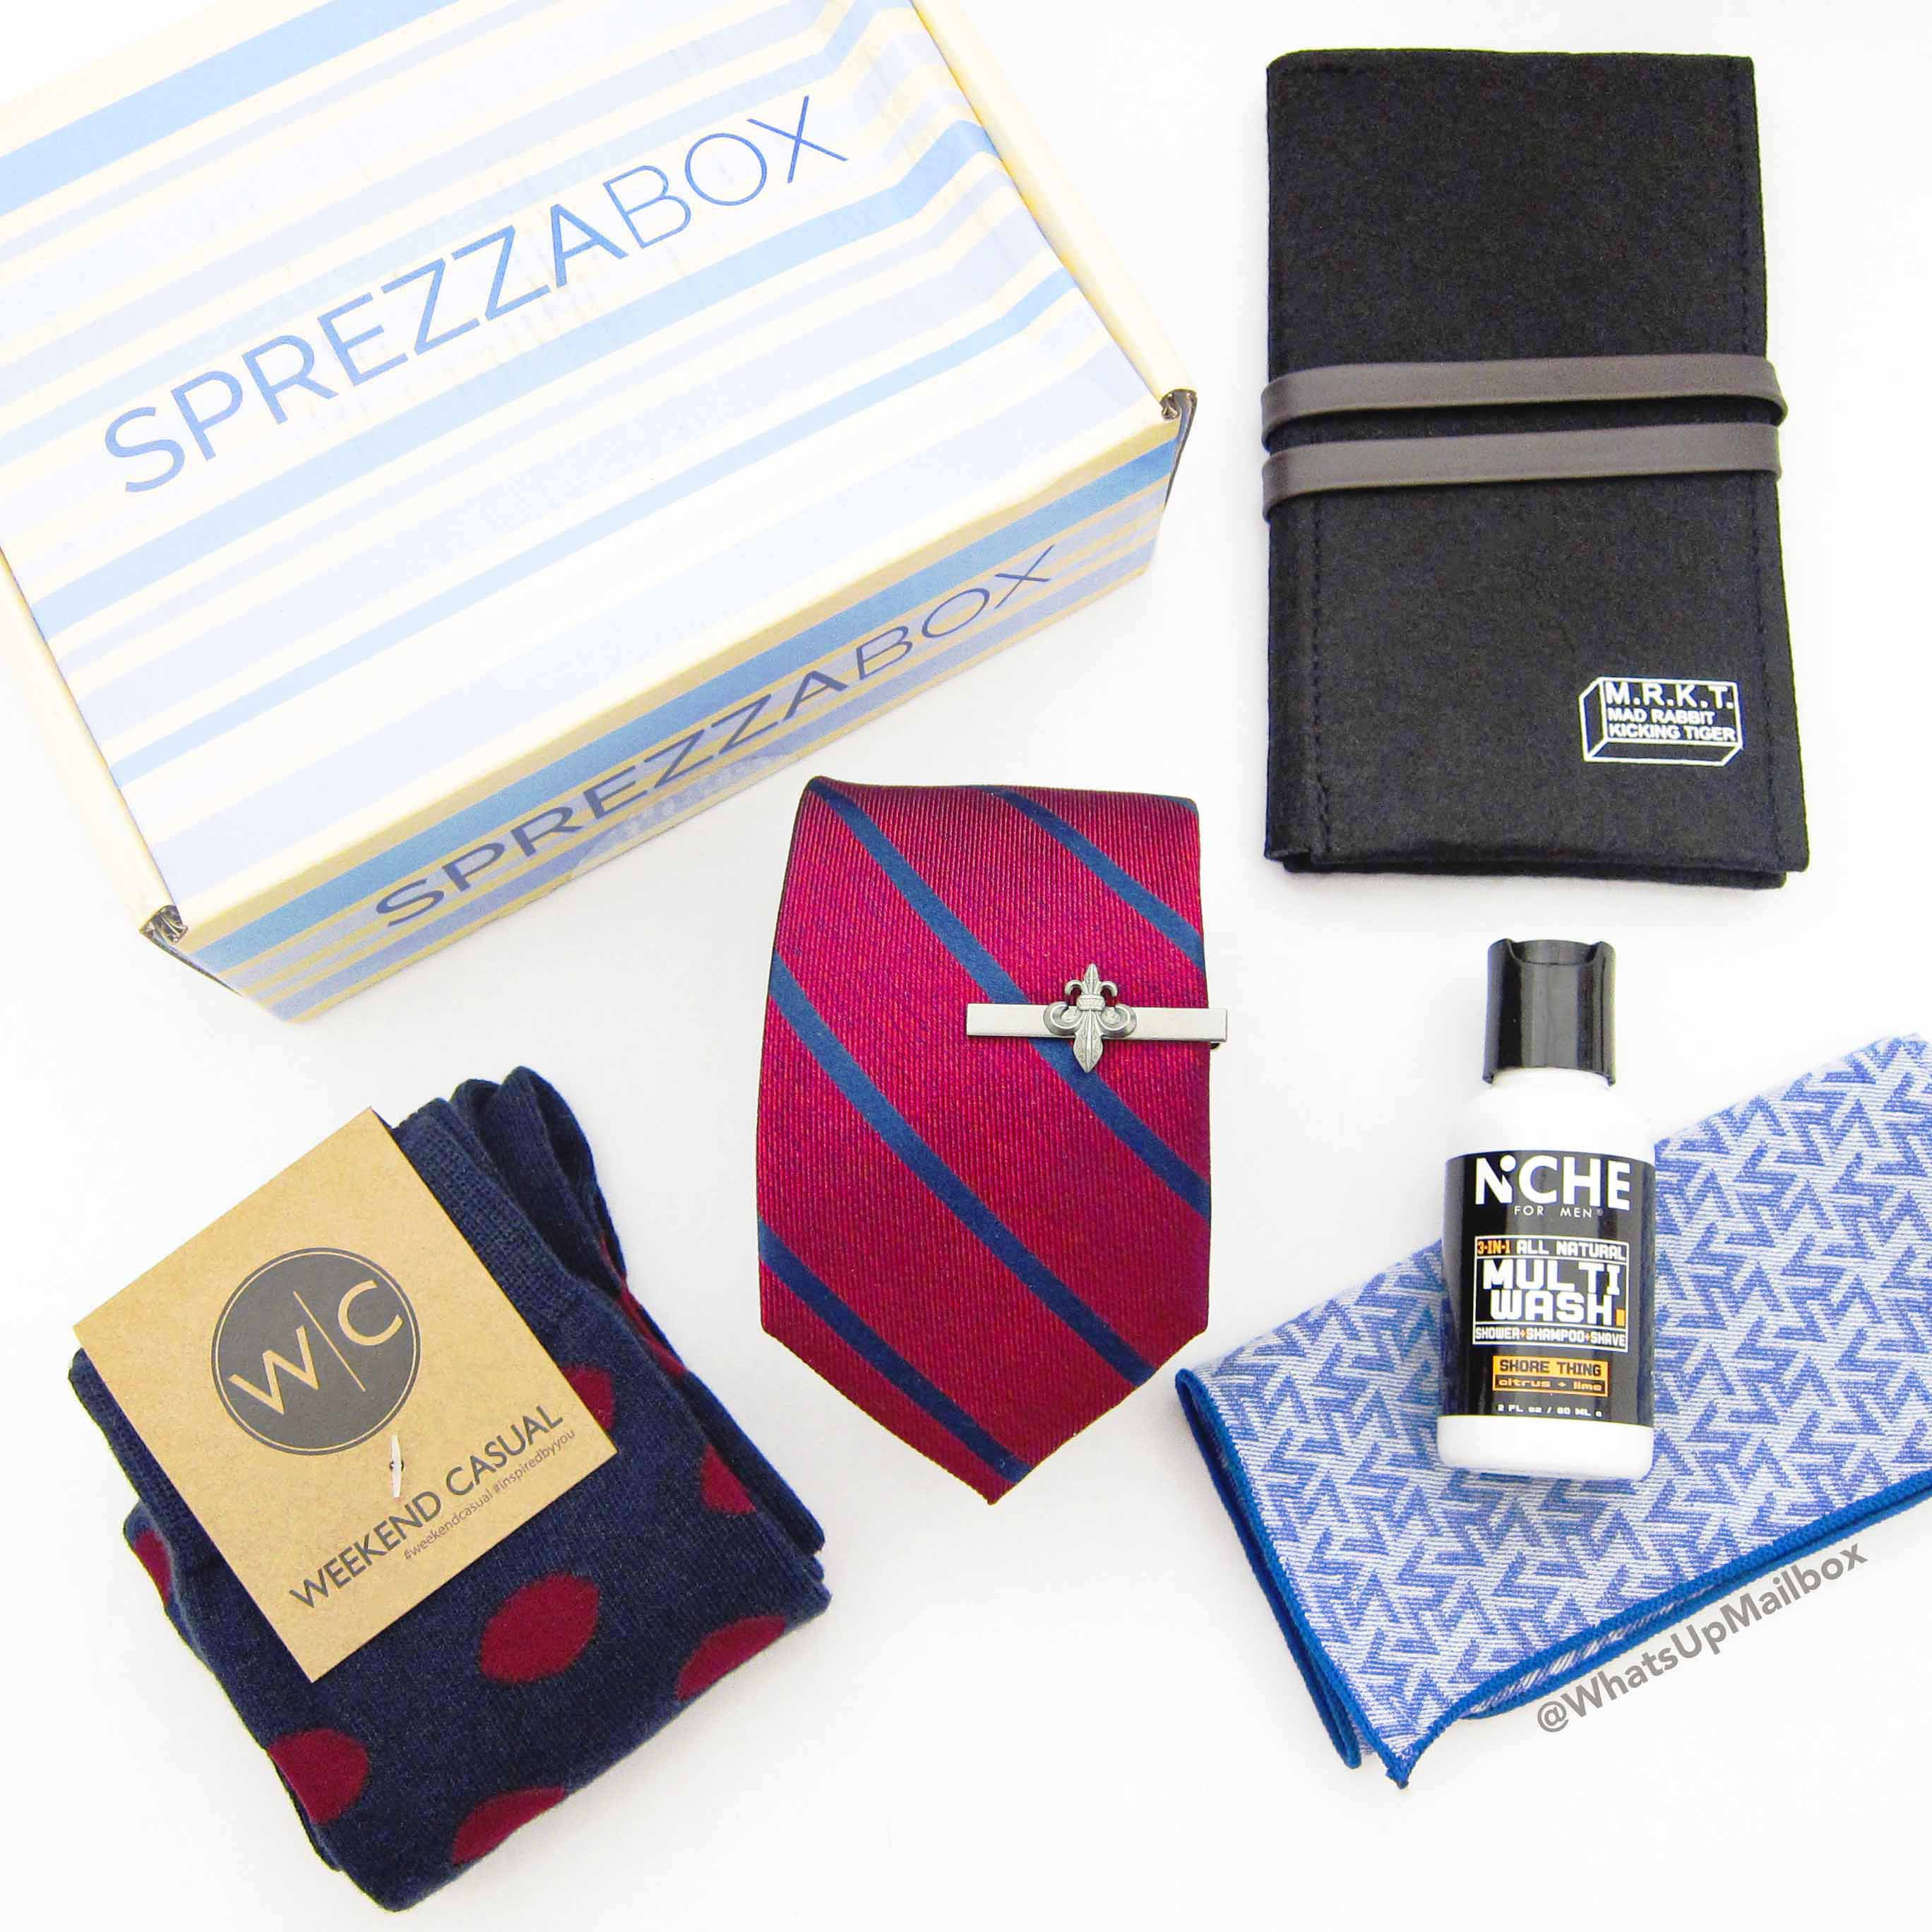 Sprezza Box September 2016 Review + Coupon!